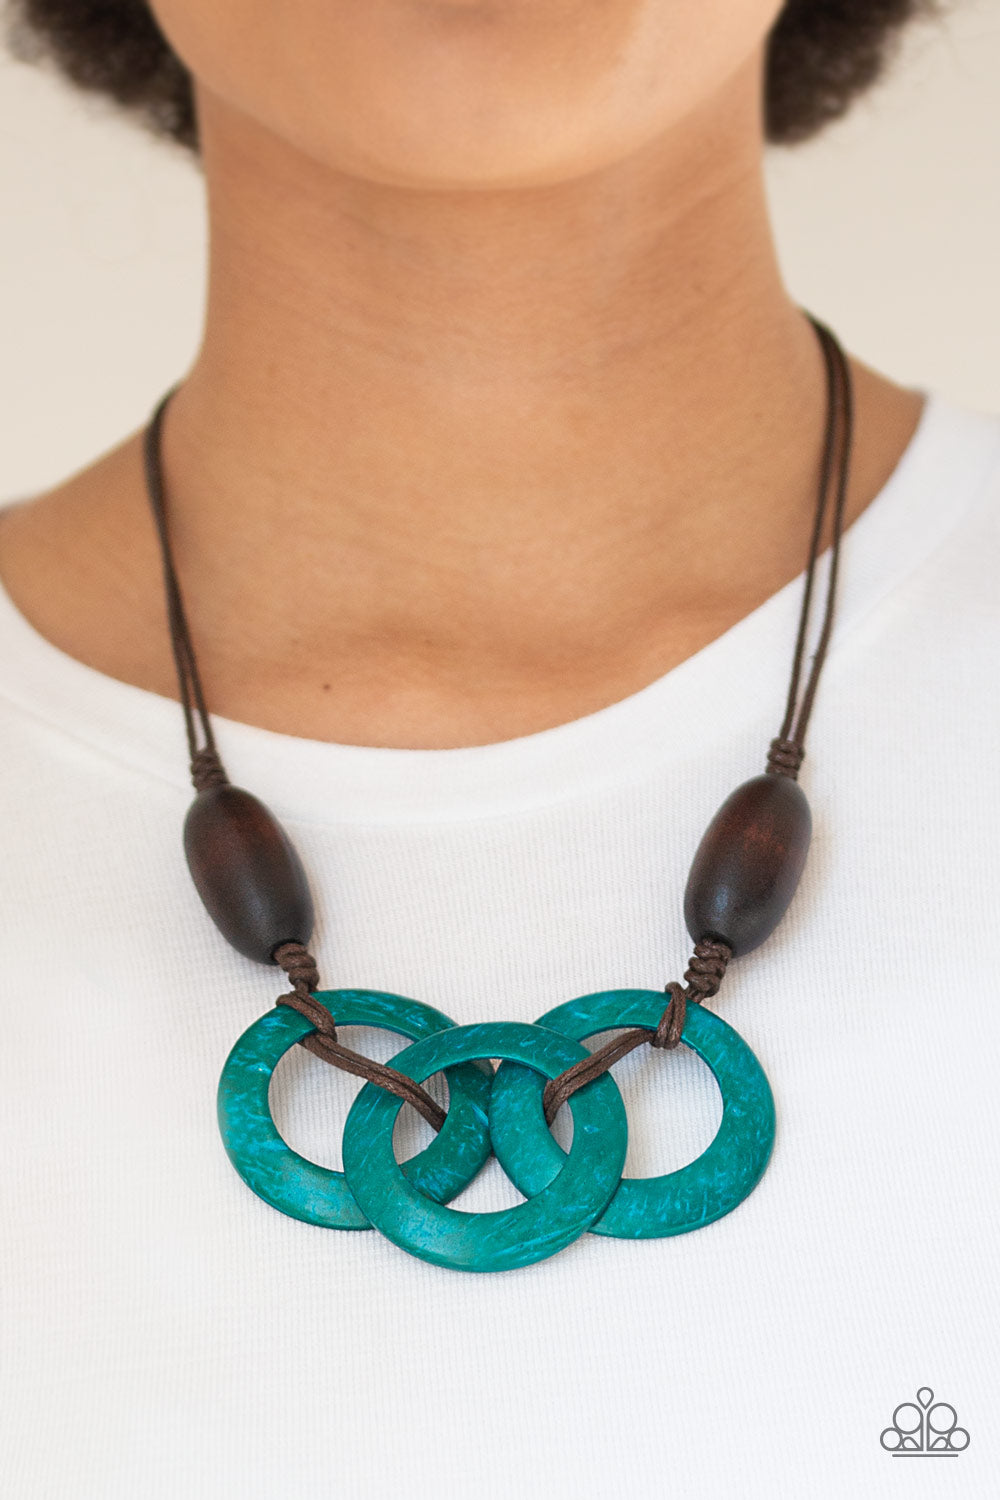 Bahama Drama Wood Necklace - Blue and Brown